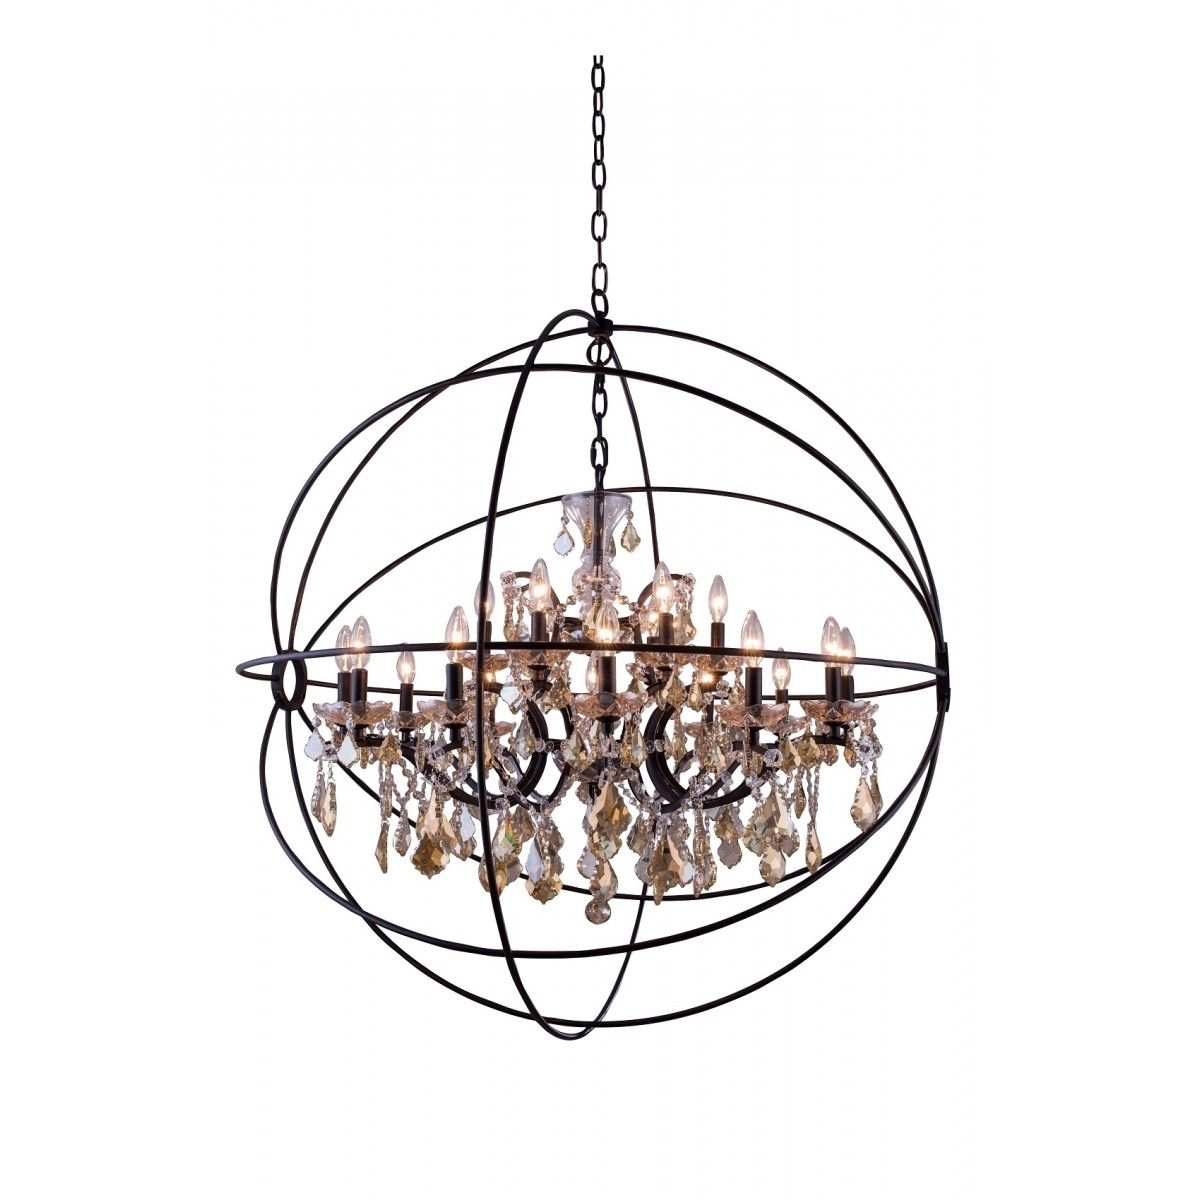 Large Globe Chandelier In Well Liked Lighting: Large Bronze Iron Crystal Orb Chandelier With 15 Light For (View 8 of 20)